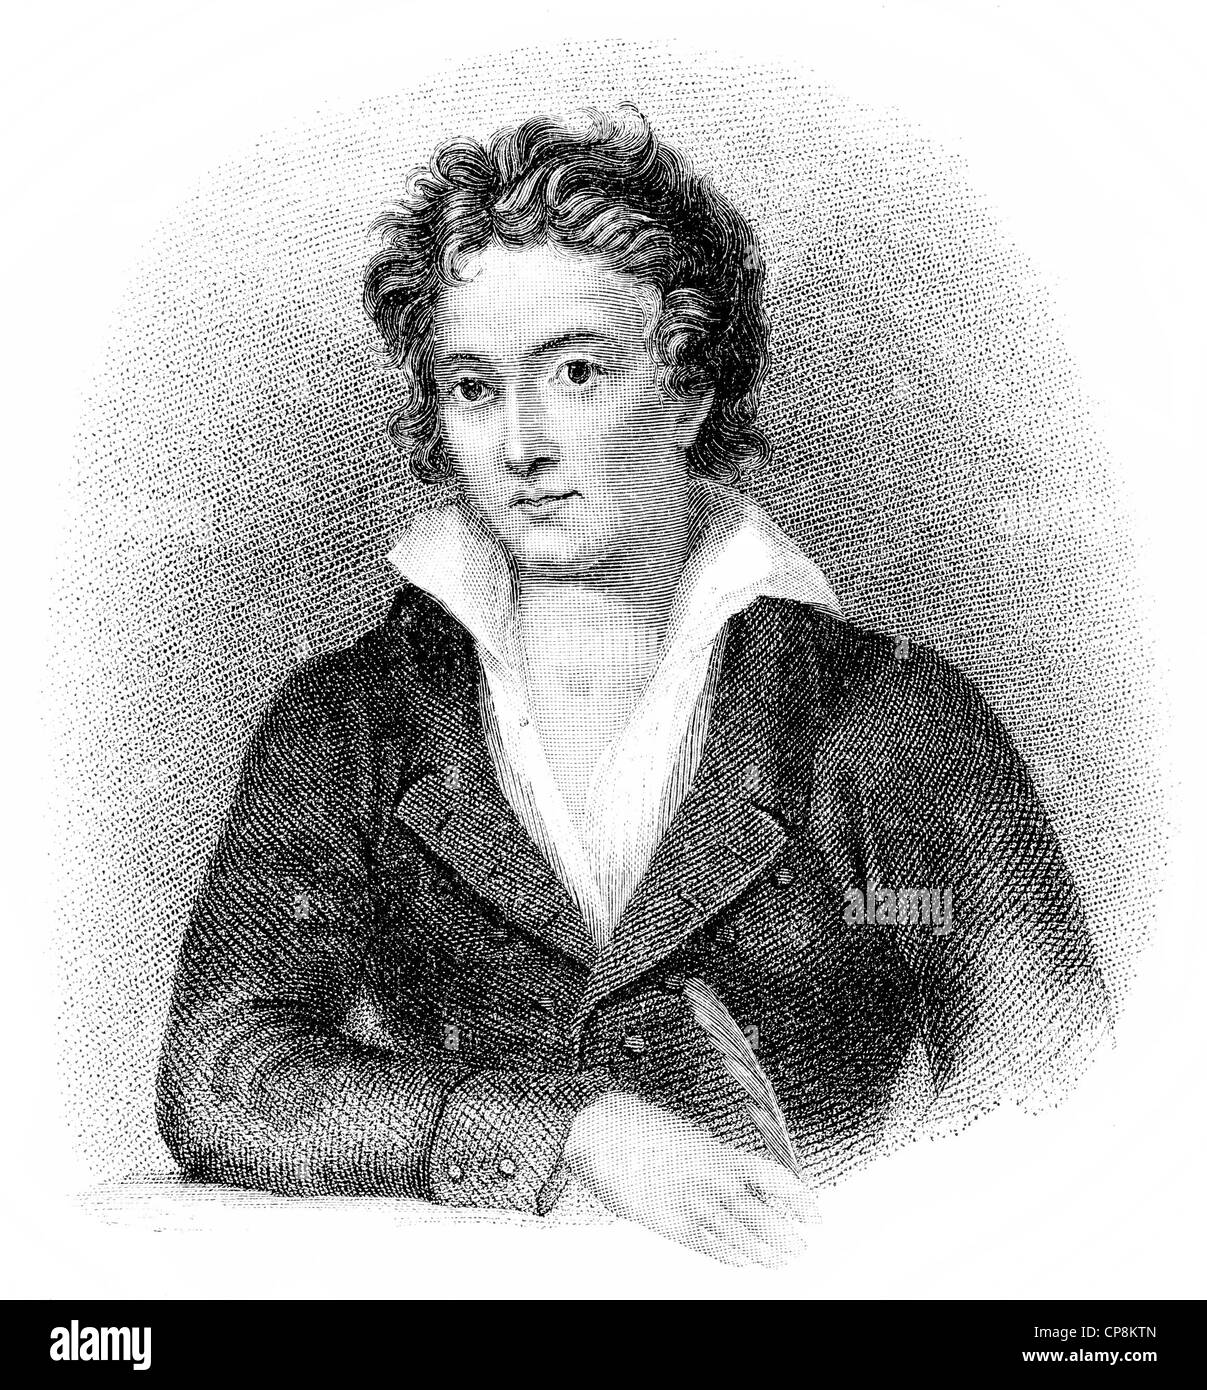 Percy Bysshe Shelley, 1792 - 1822, a British writer of Romanticism - Stock Image